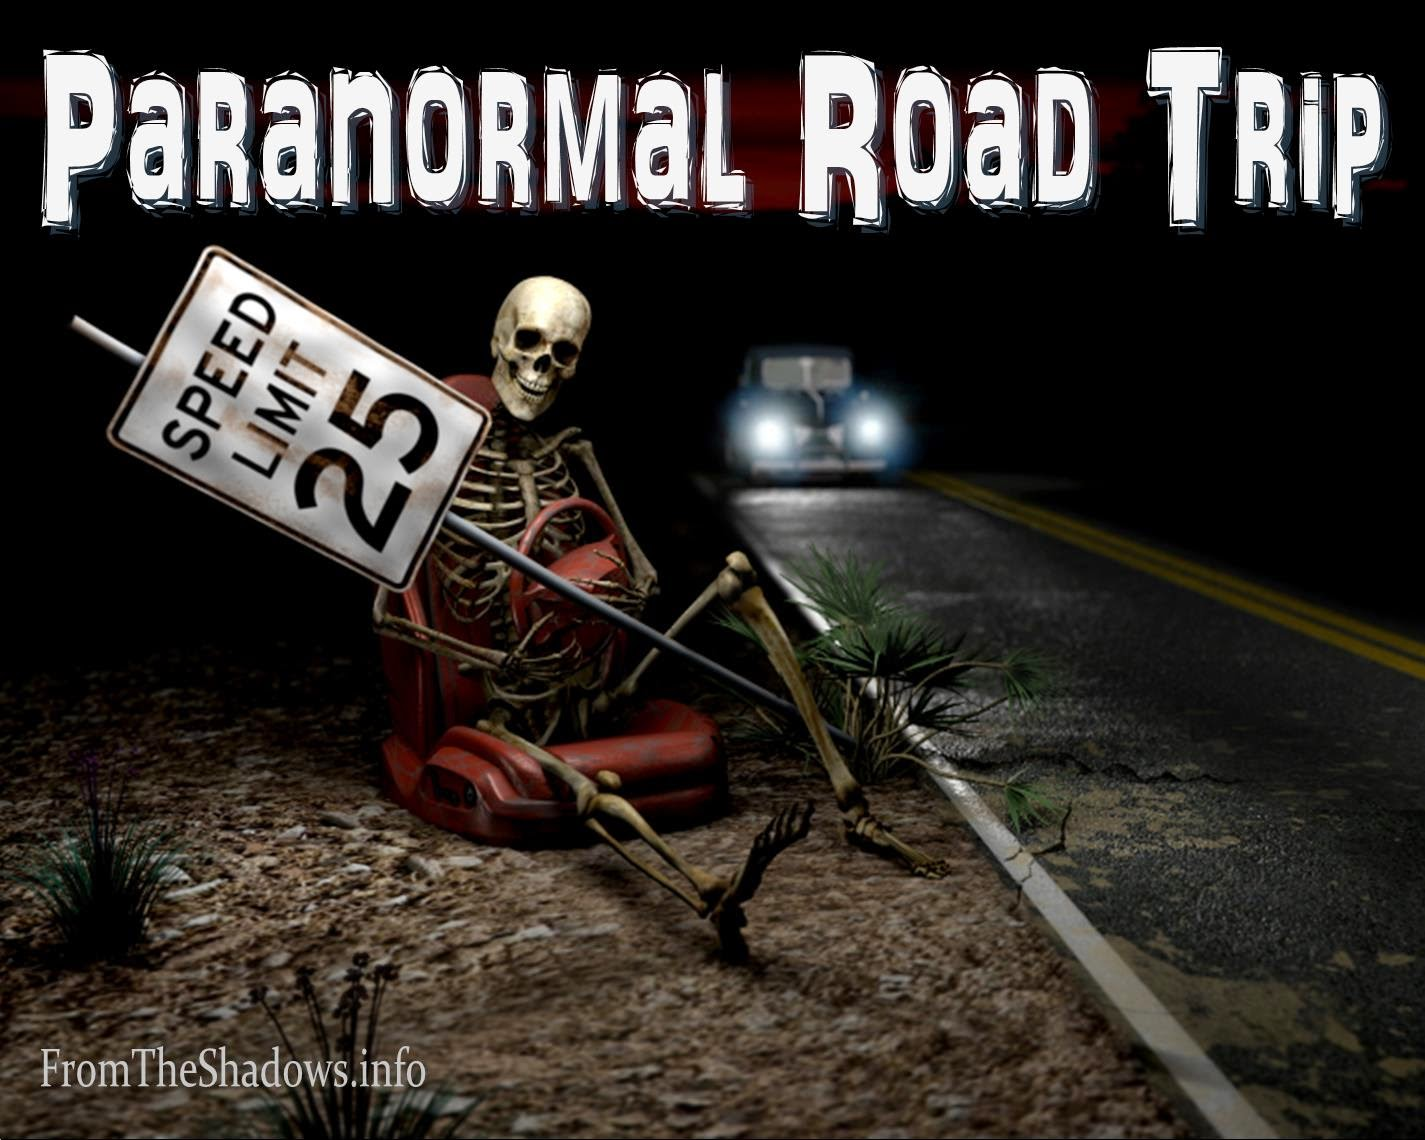 Paranormal Road Trip: Destination Chicago with Megan Morgan